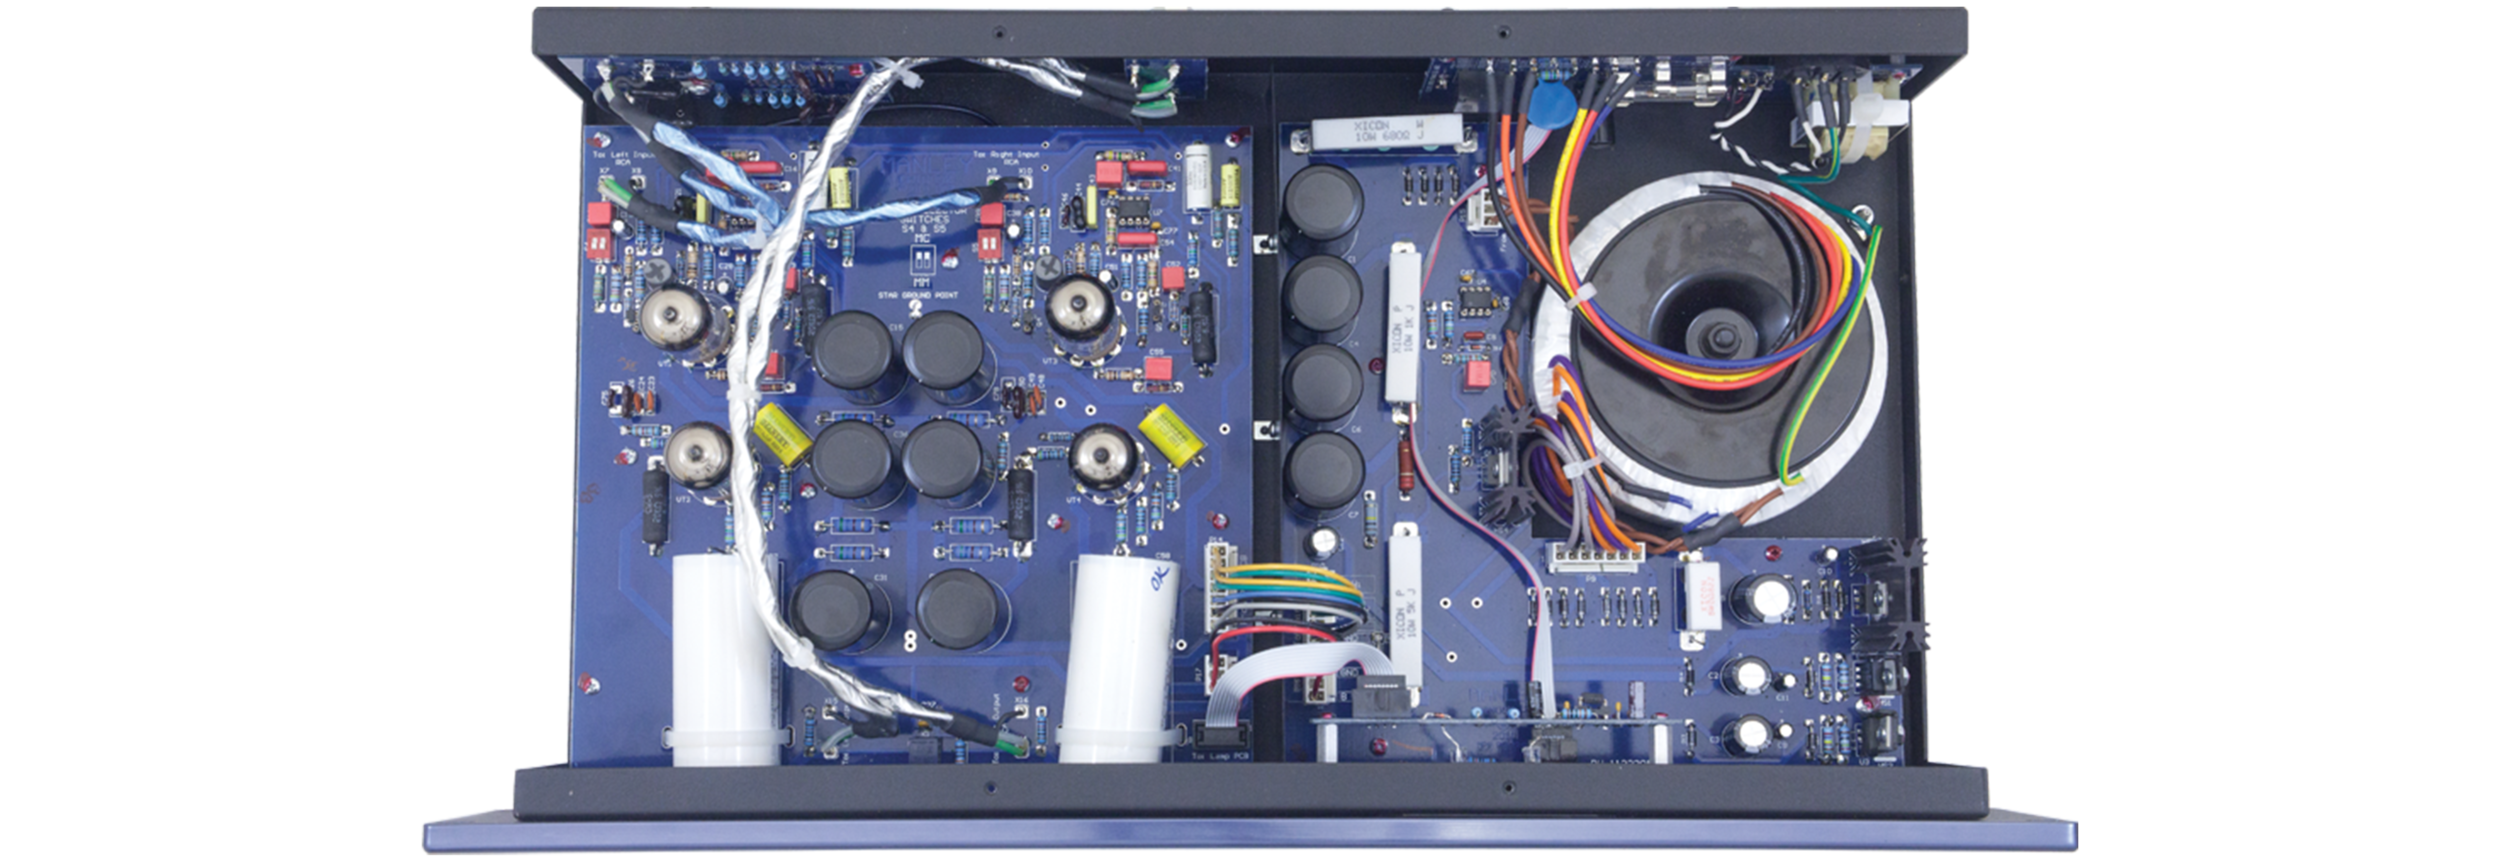 Manley Chinook Phono Stage image3